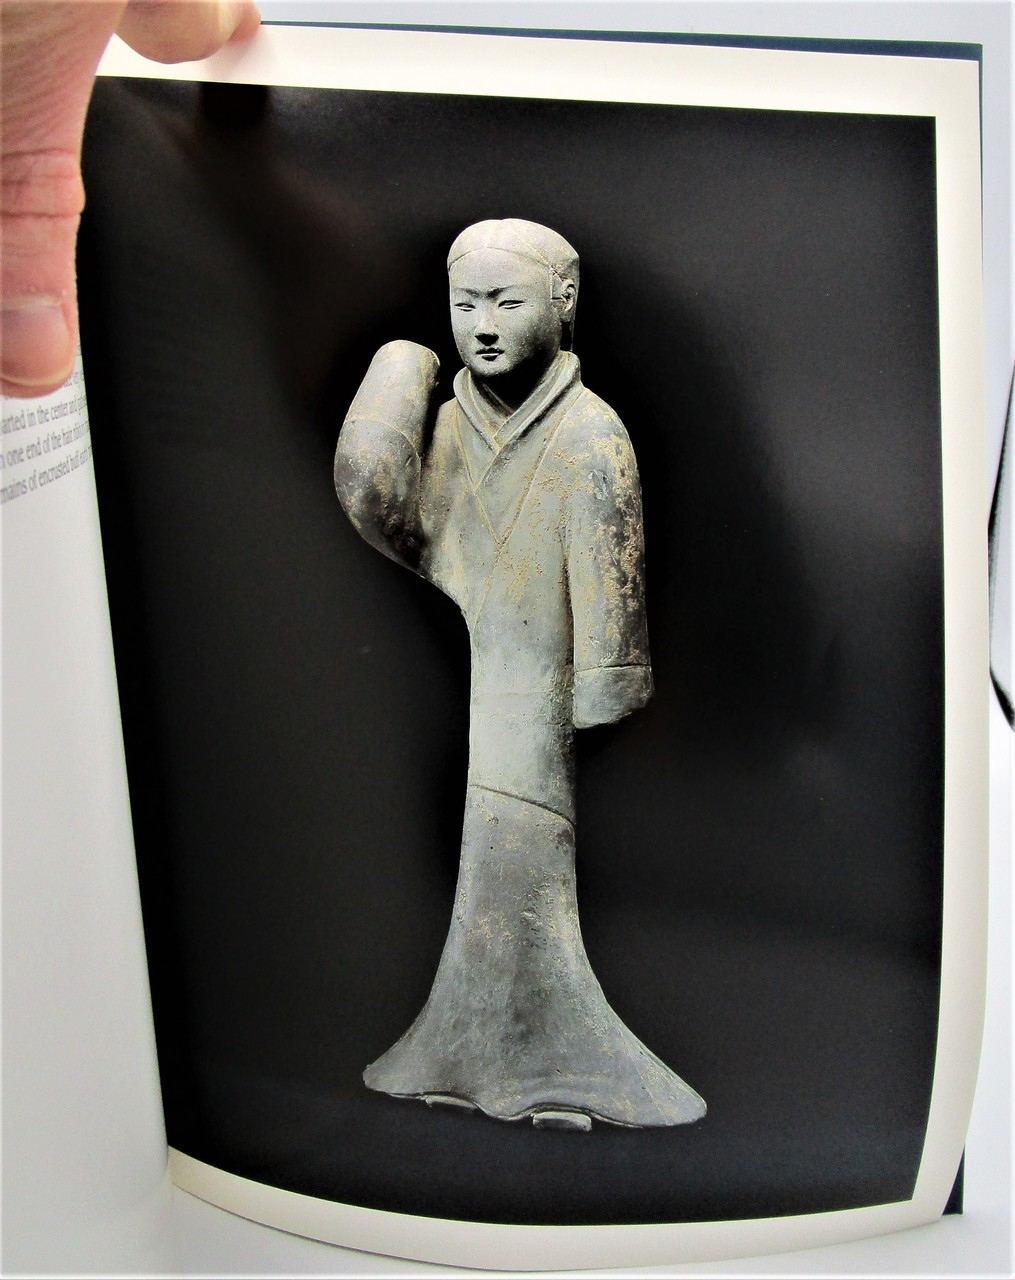 ANCIENT CHINESE CERAMICS AND TOMB SCULPTURES - 2000